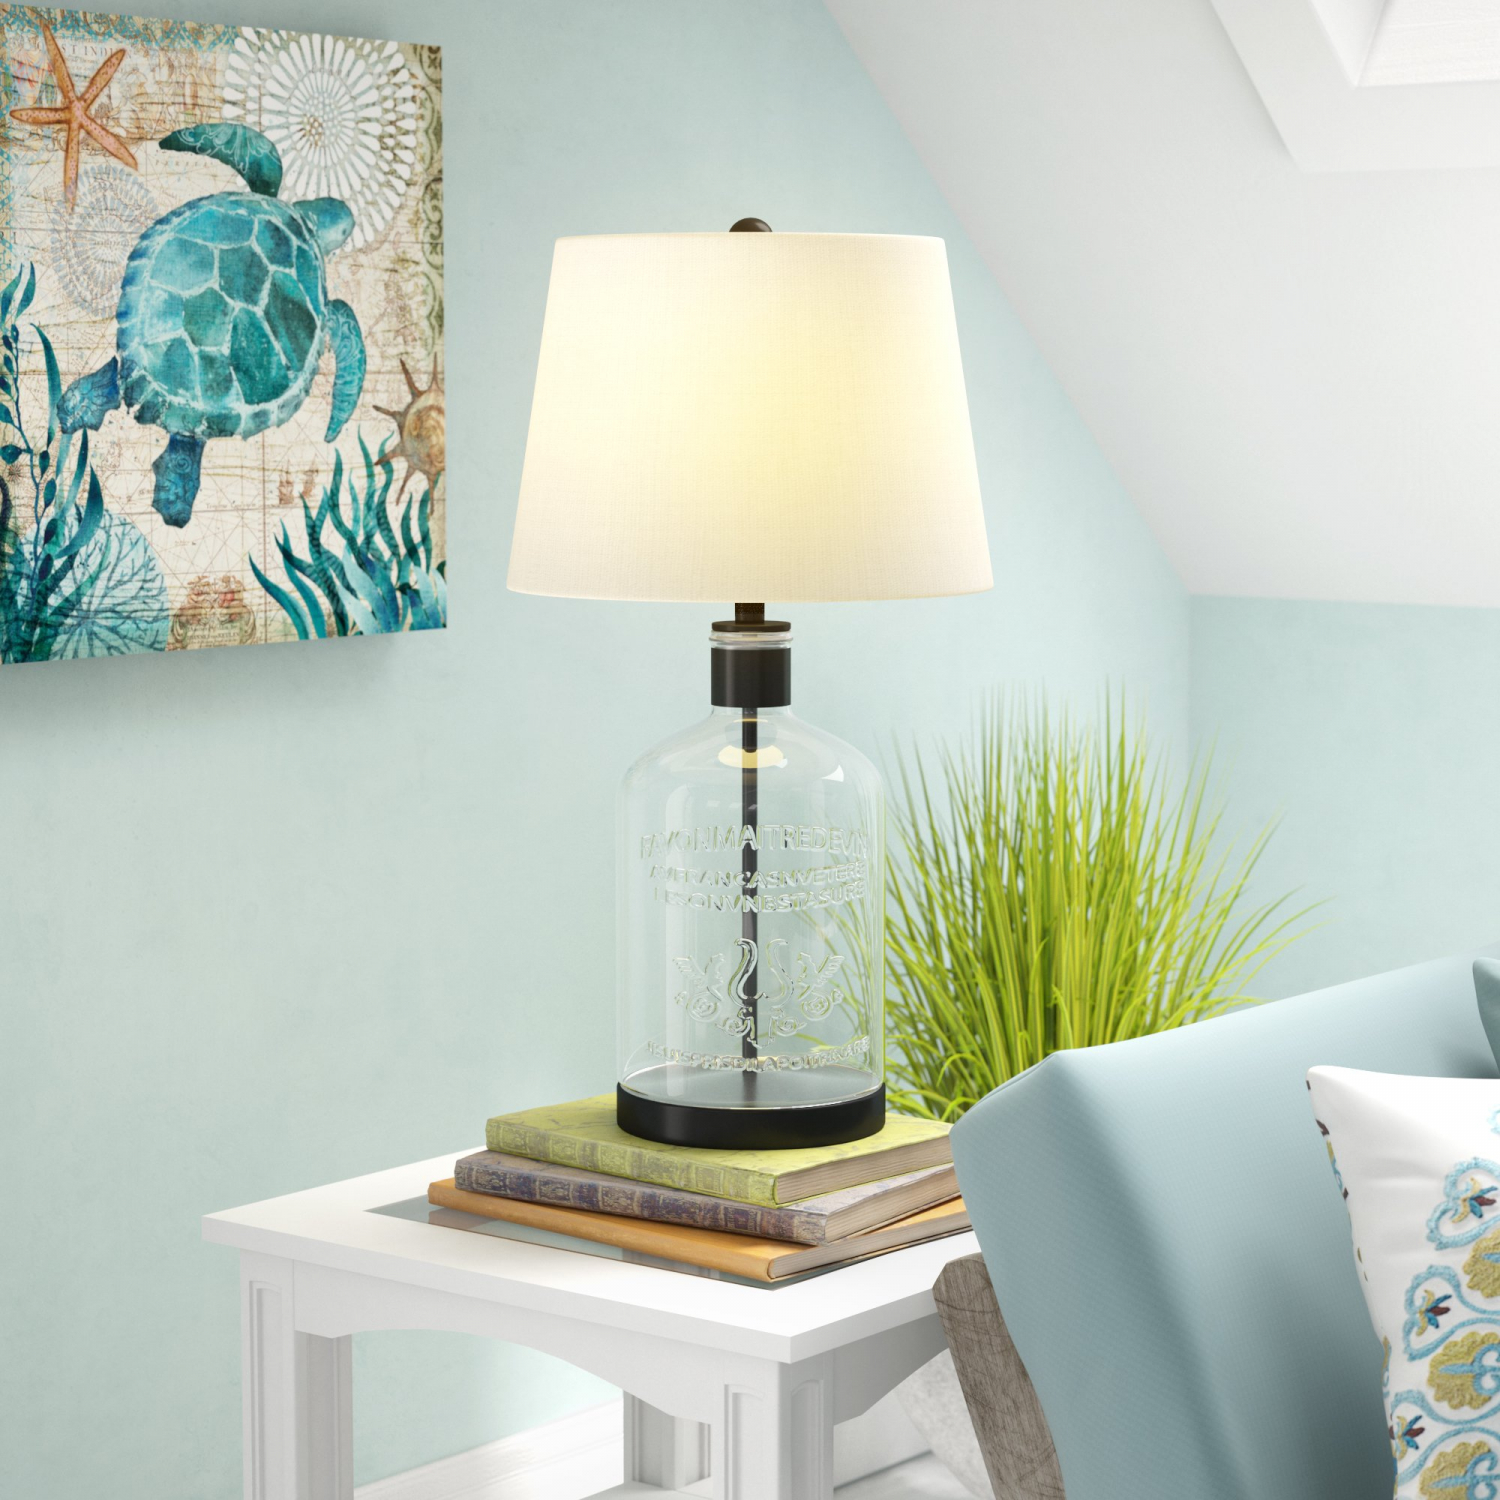 Glass Jar Lamp Shade Metal And Glass Jar 26 5 Inch Table Lamp With 3 Way Switch And Drum